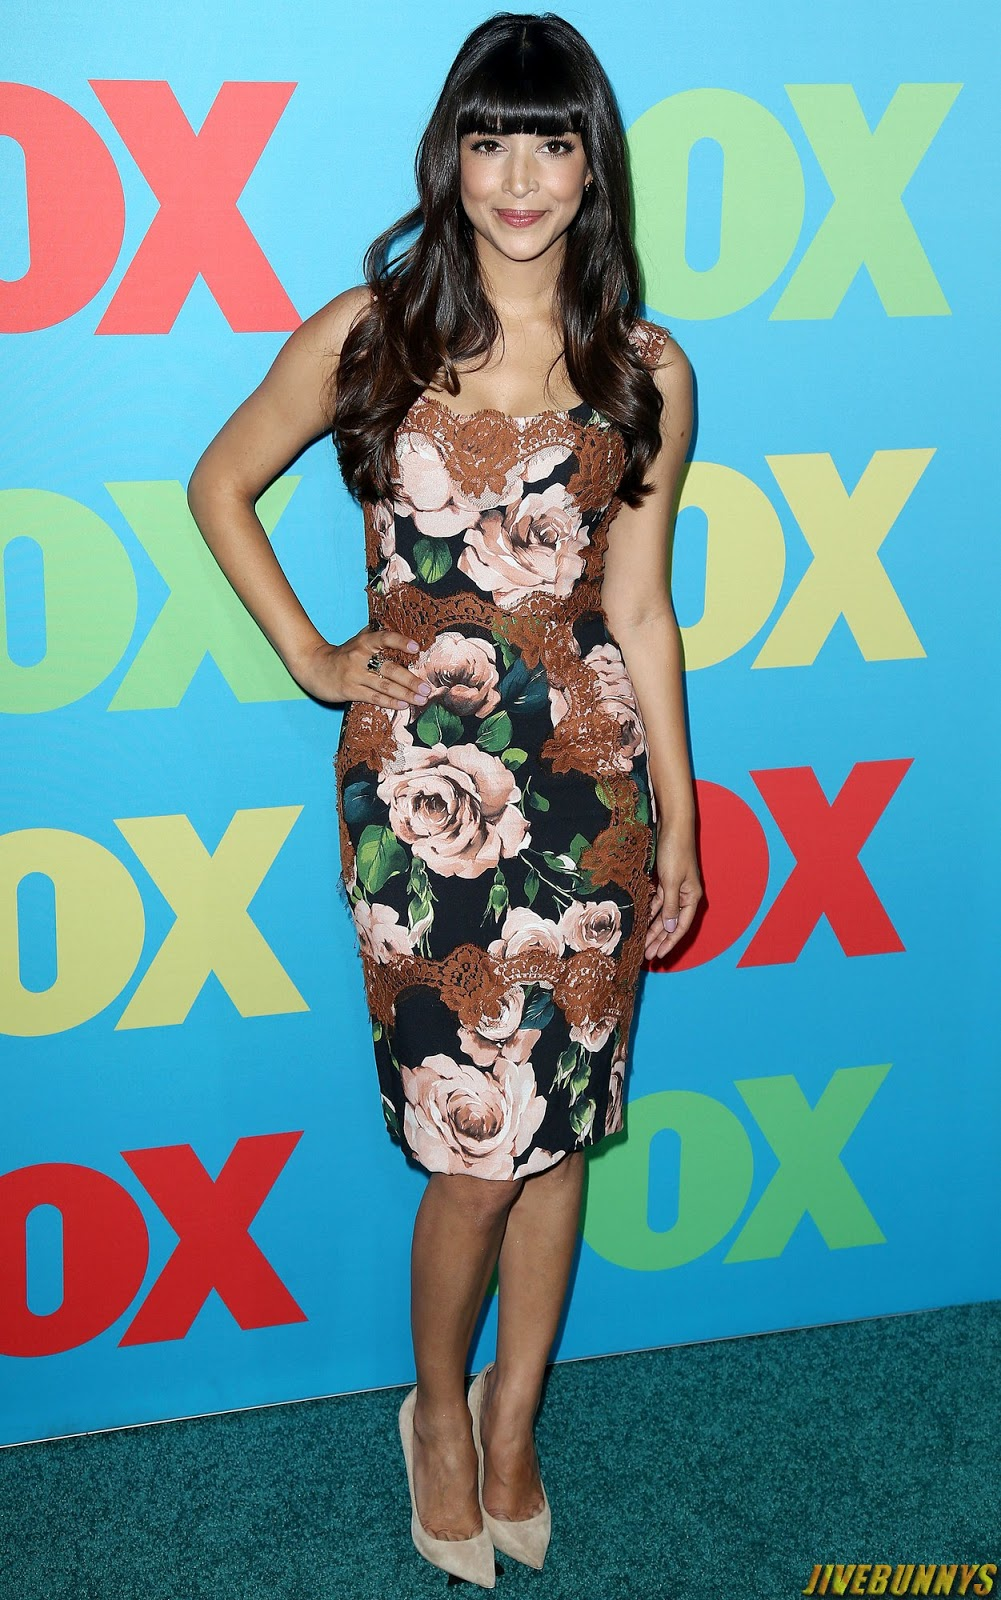 FOX Network 2014 Upfront event in NY 05/12/14